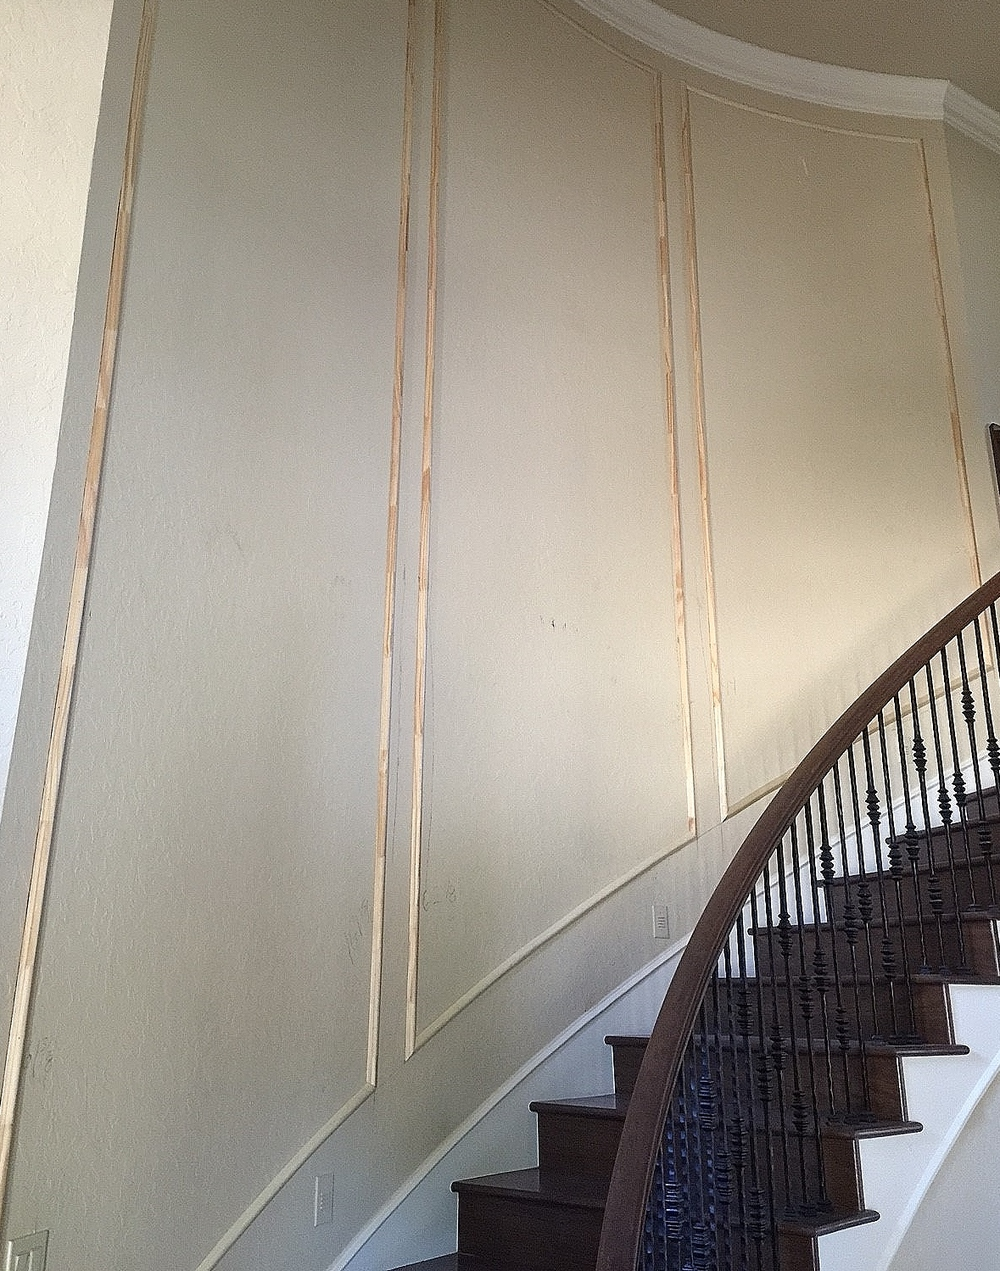 Entry Hall Stair Wall - in process, with moulding applied